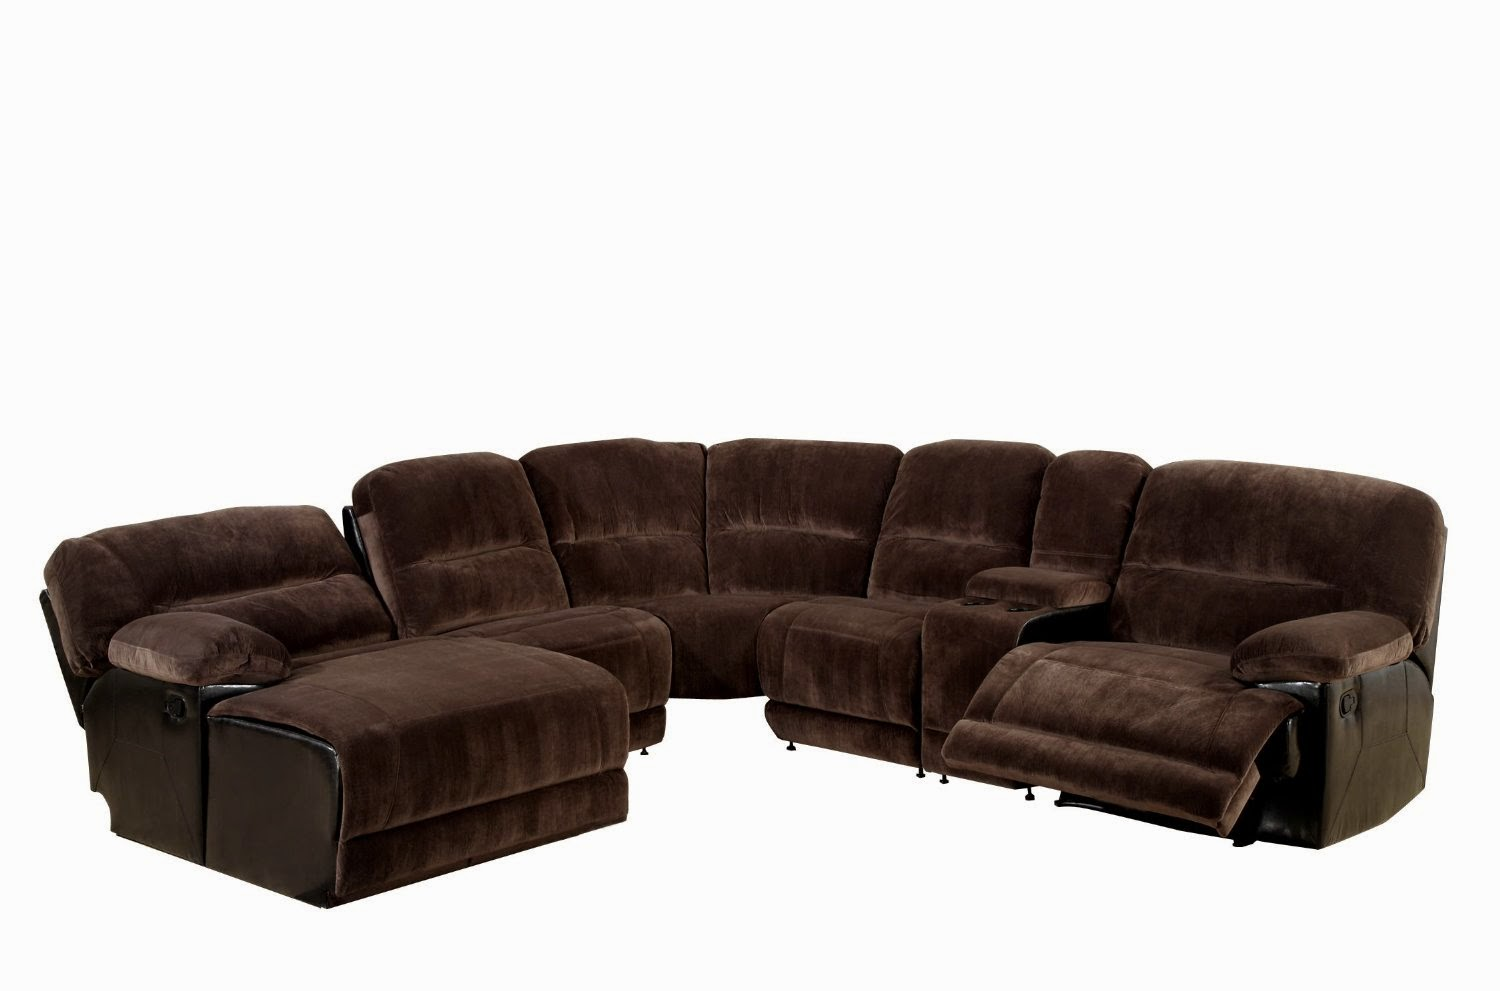 Reclining sofas for sale cheap saddle microfiber for Sectional sofas with 4 recliners